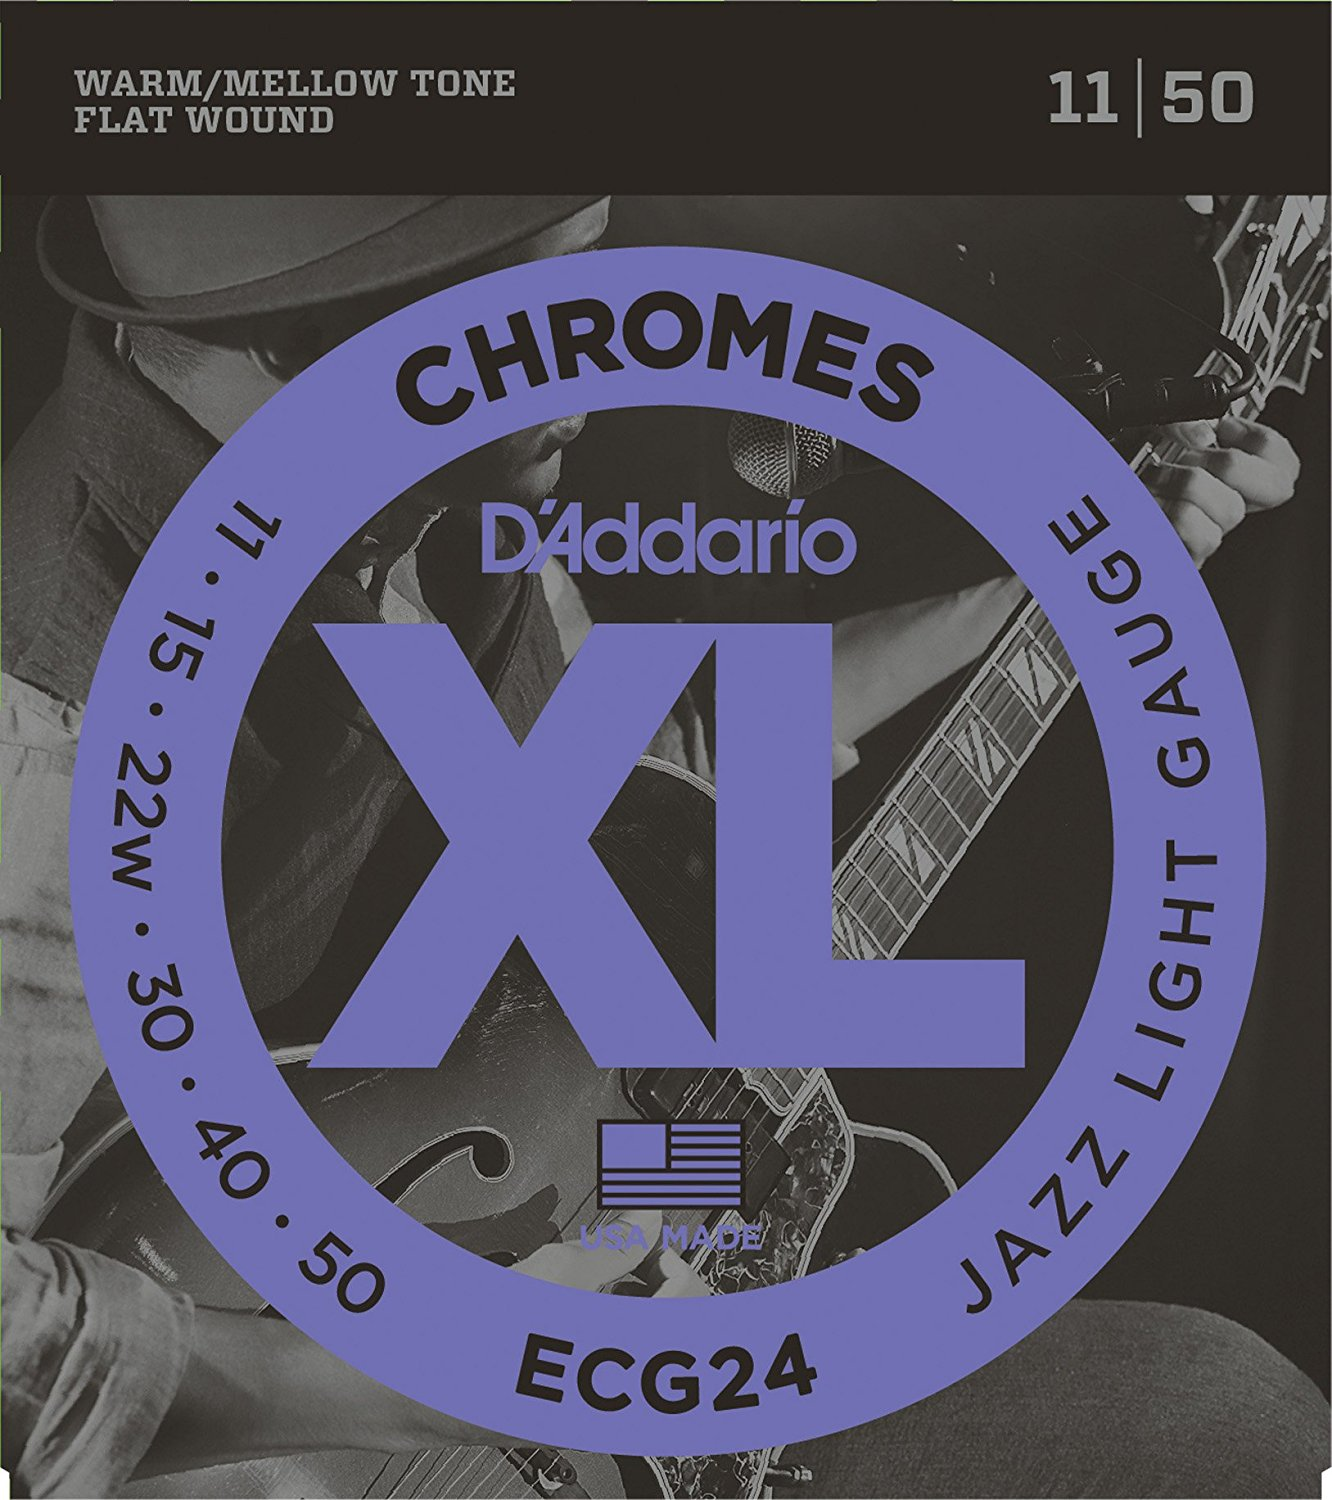 D'Addario ECG24 XL Chromes Jazz Light Electric Guitar Strings Flatwound, Jazz Light, 11-50 rotosound sm77 jazz bass flatwound strings monel